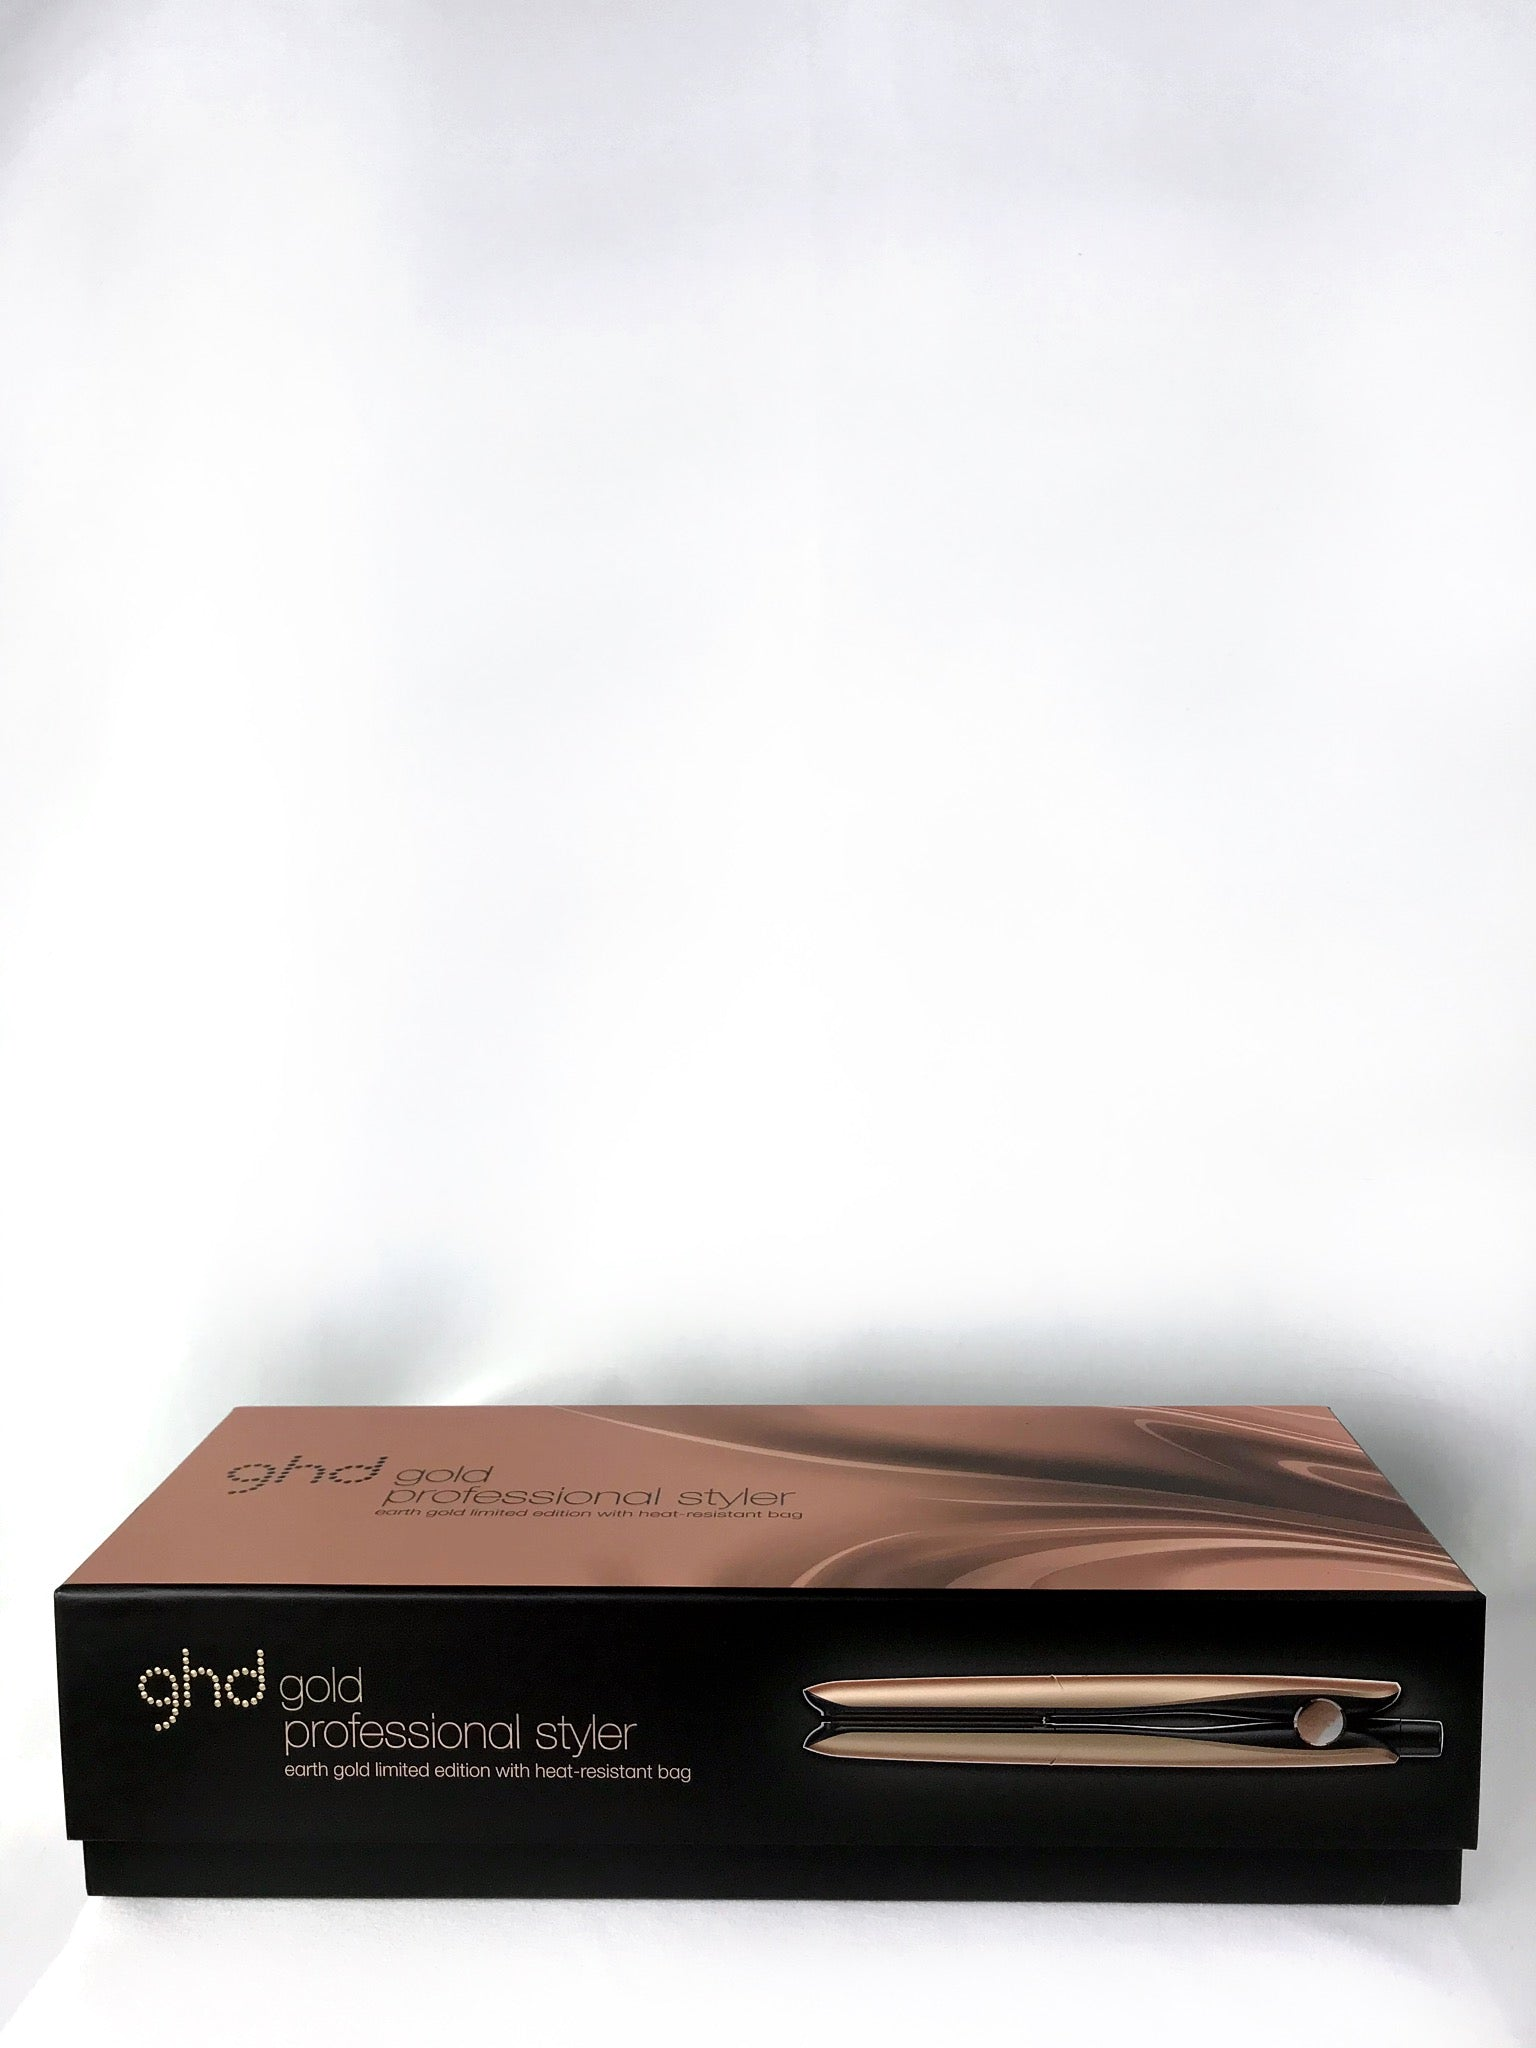 ghd gold professional styler limited edition